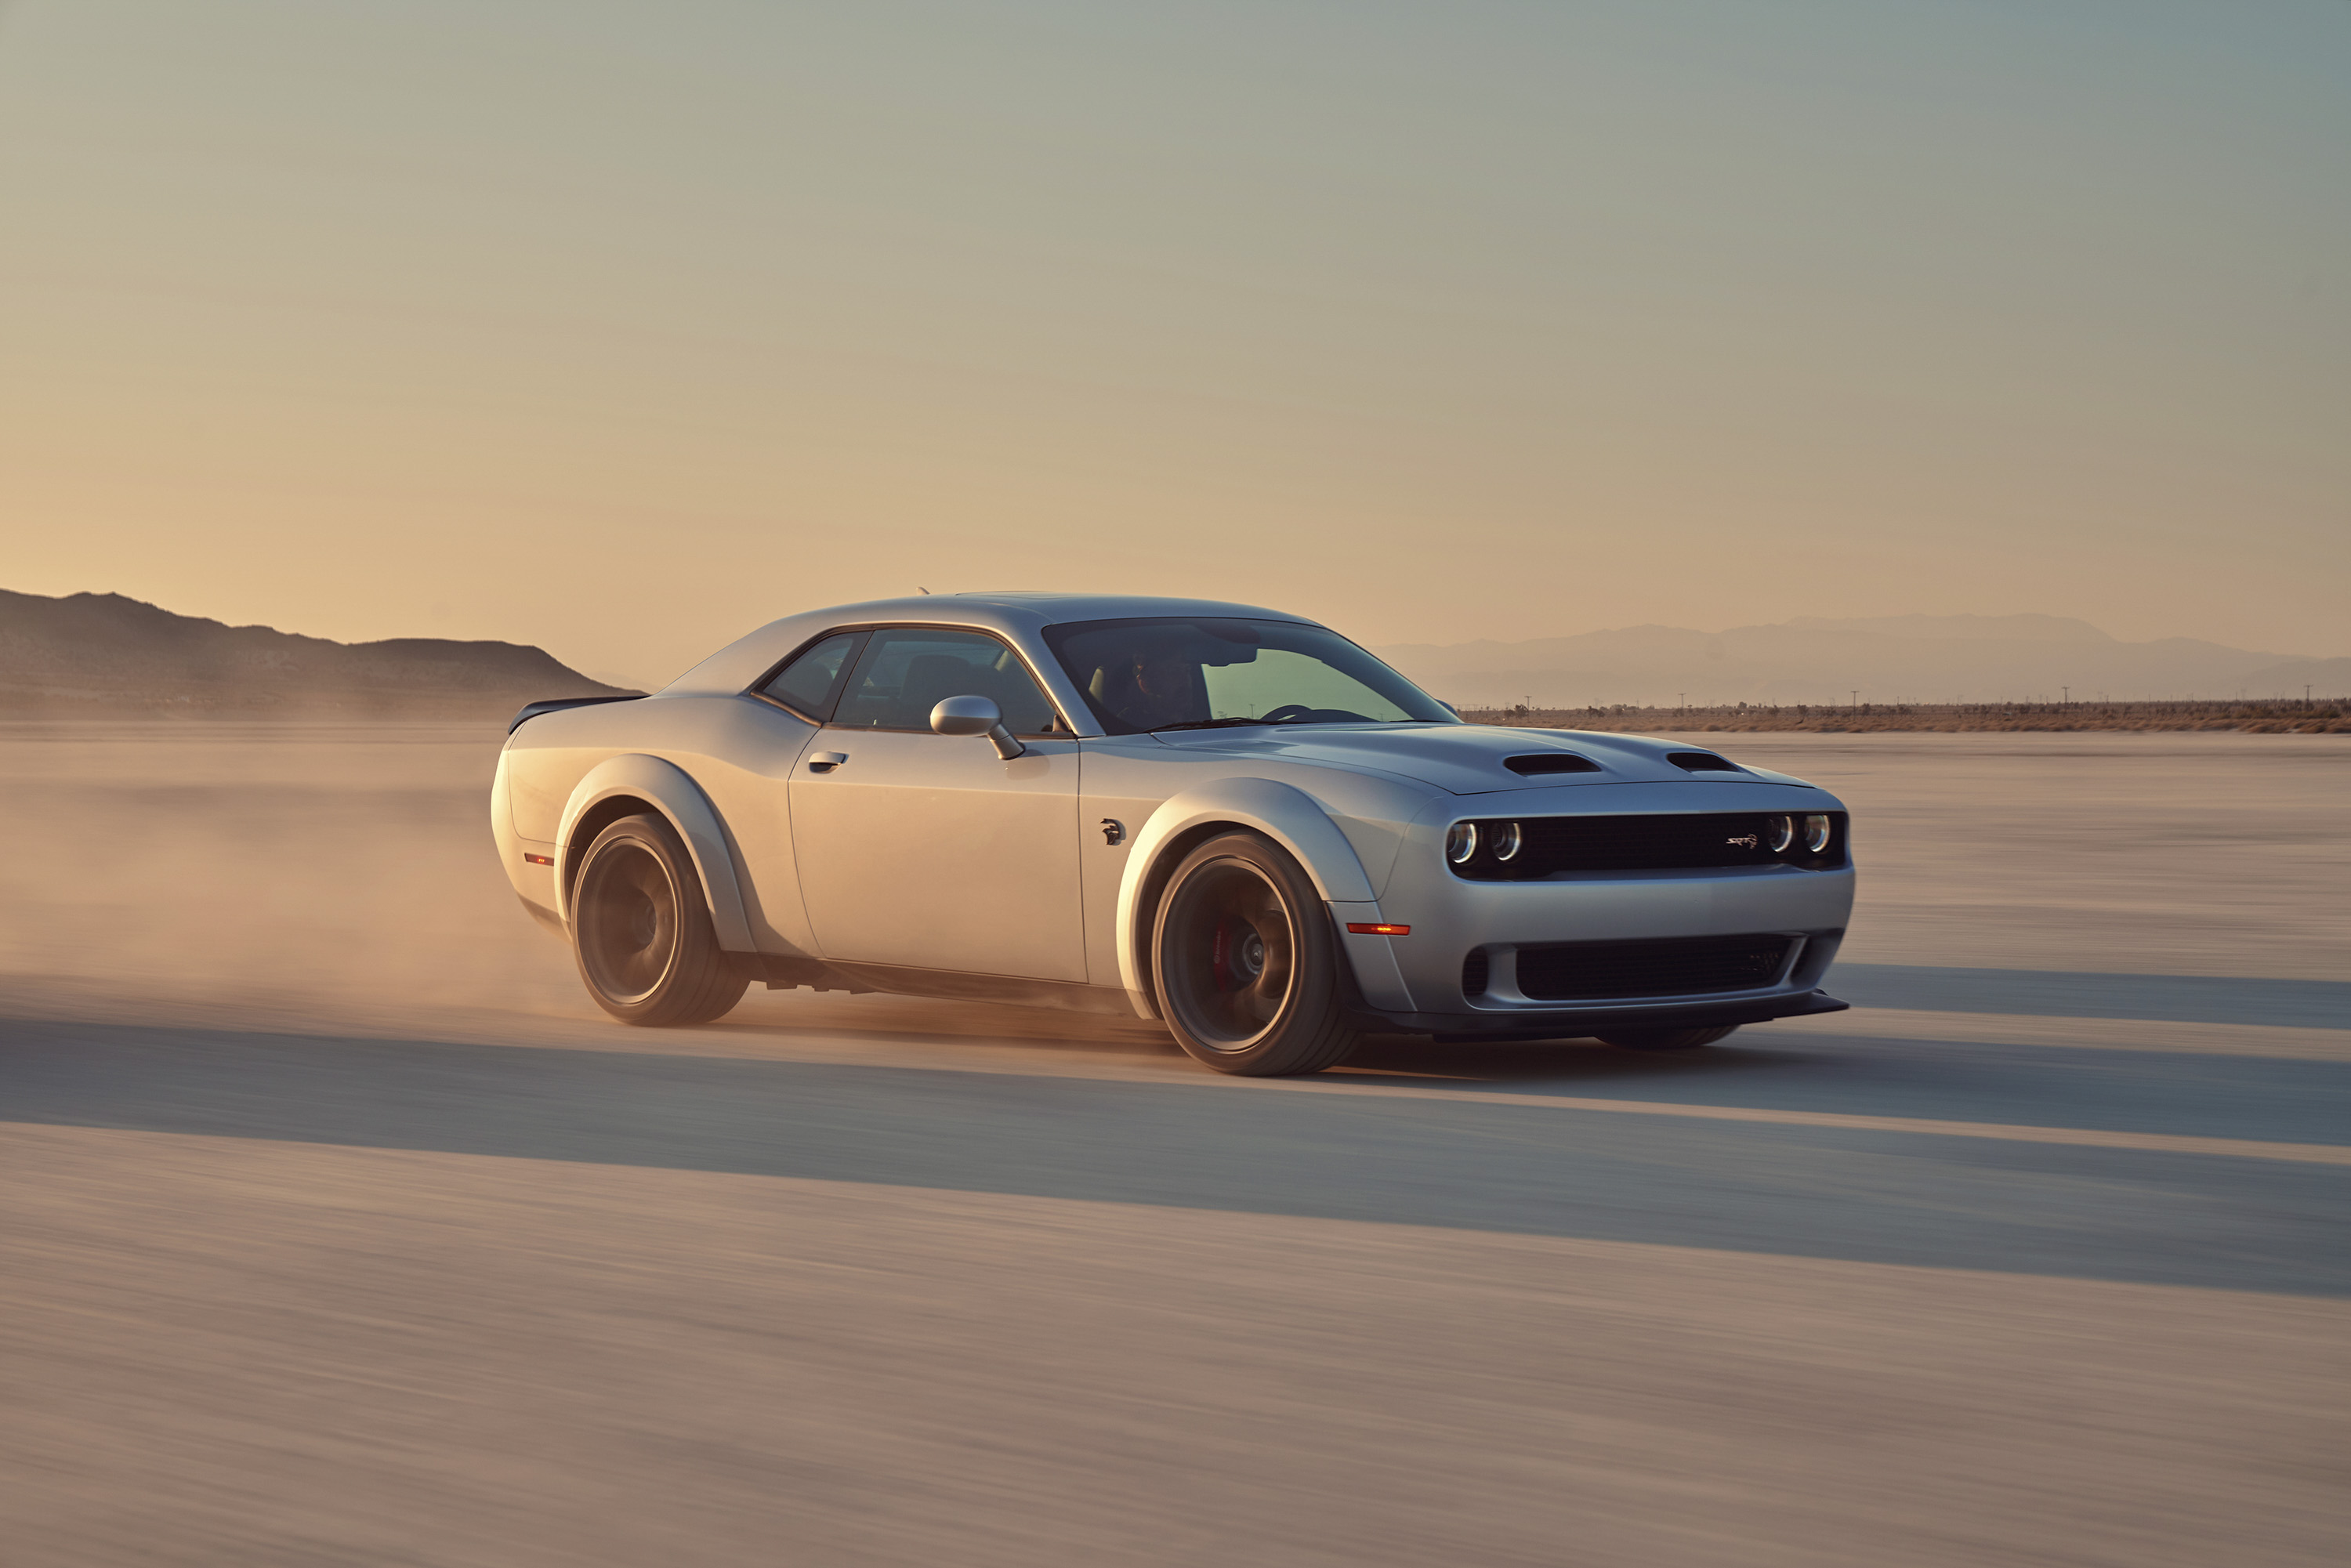 Dodge Challenger Srt Hellcat Redeye Is Now The Most Powerful Muscle